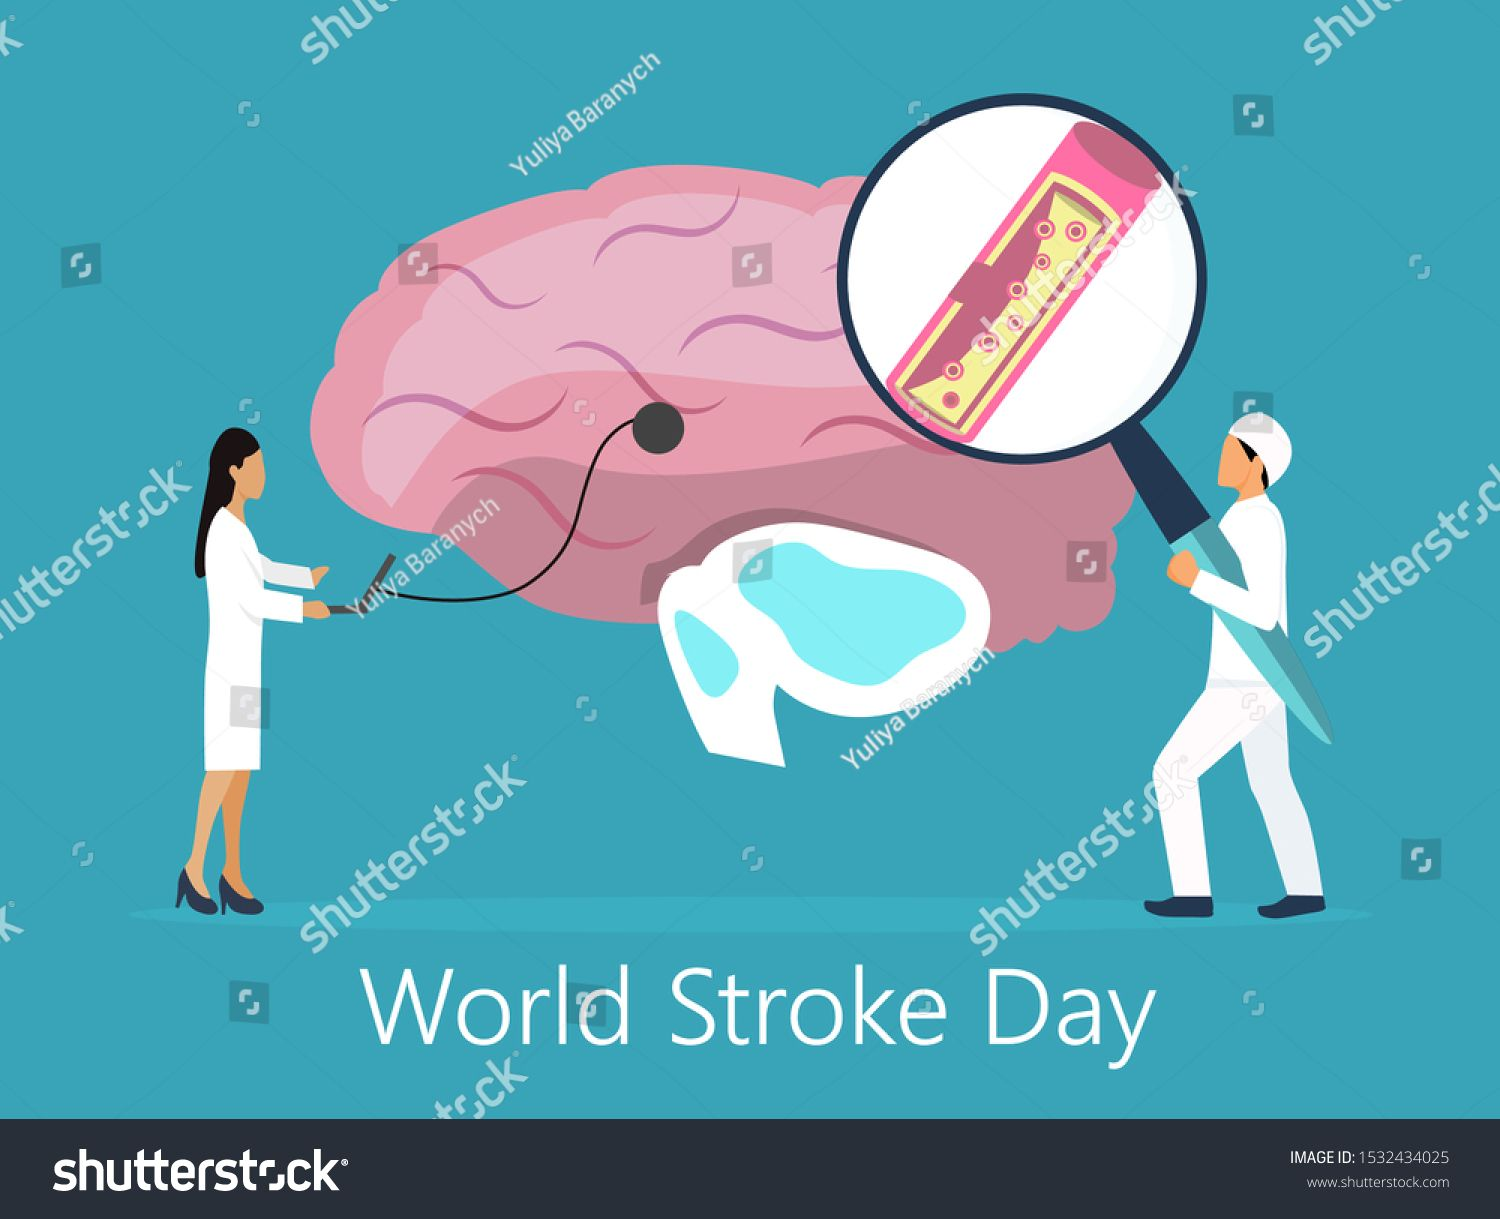 World Stroke Day is celebrated in October 29th. Neurology